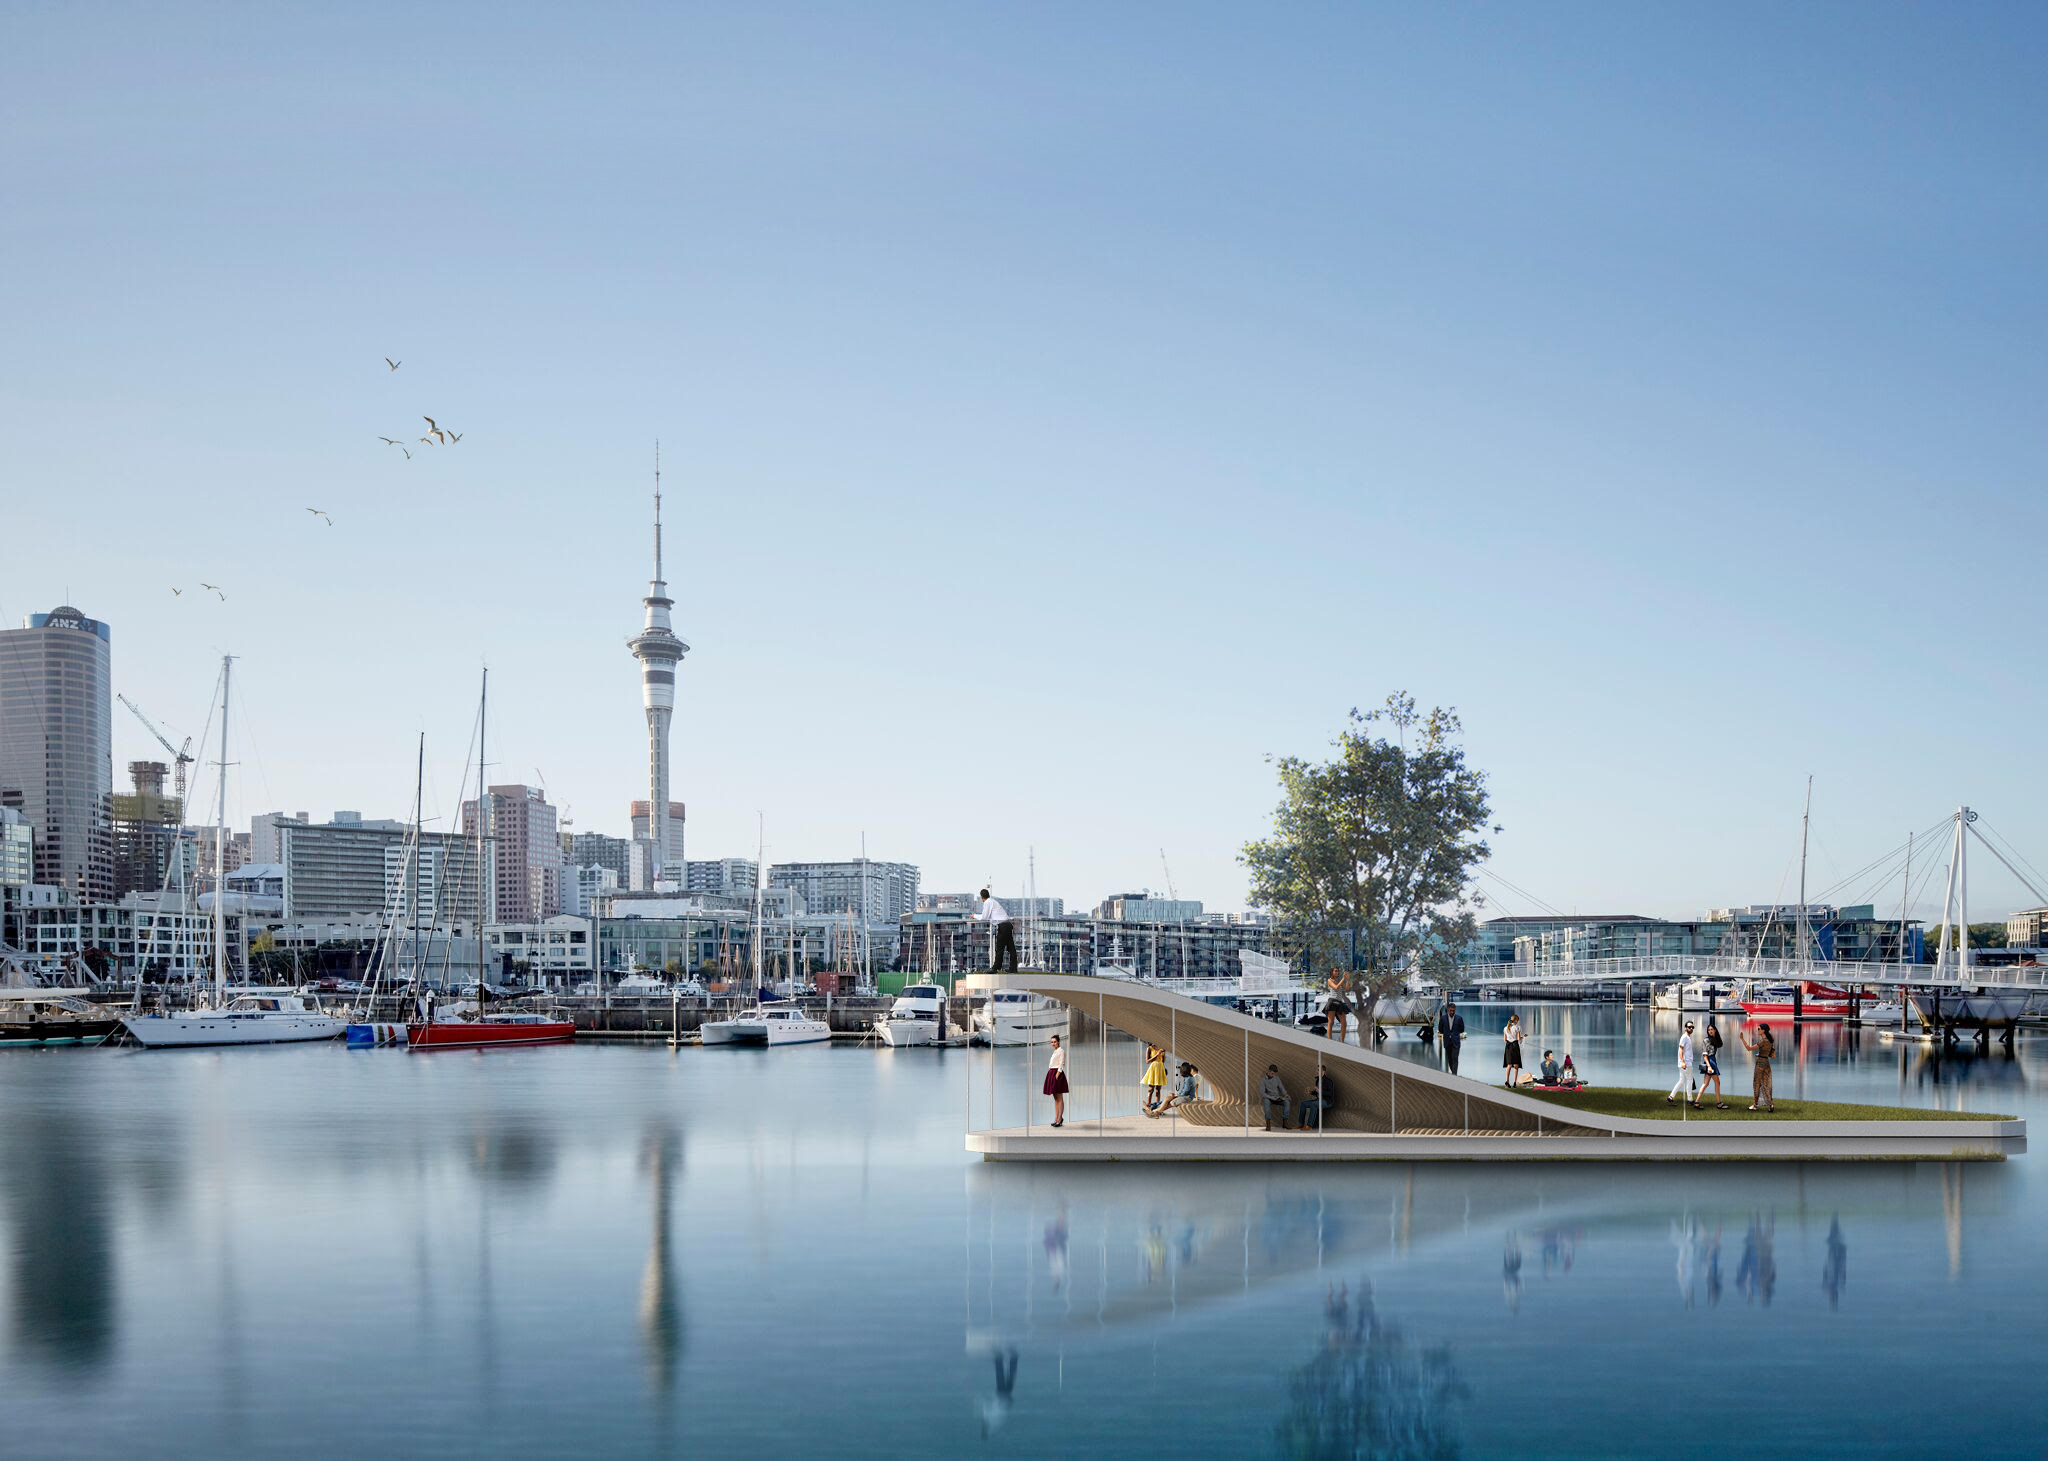 LandLAB's imagined man-made island has been shortlisted in the experimental section of the World Architecture Festival awards.